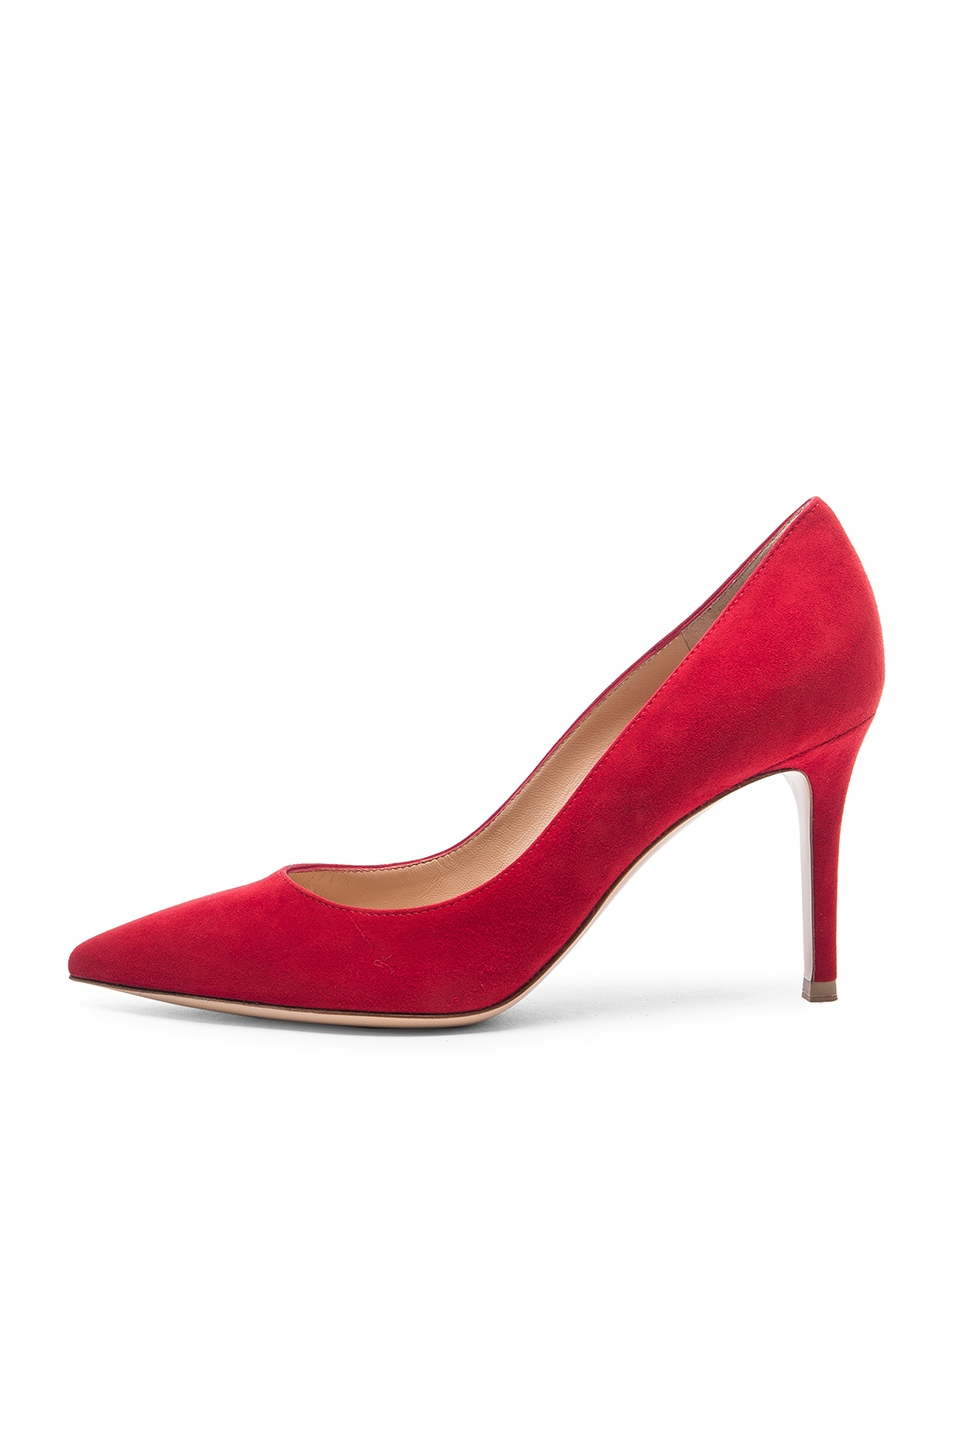 Image 5 of Gianvito Rossi Suede Gianvito 85 Pumps in Tabasco Red